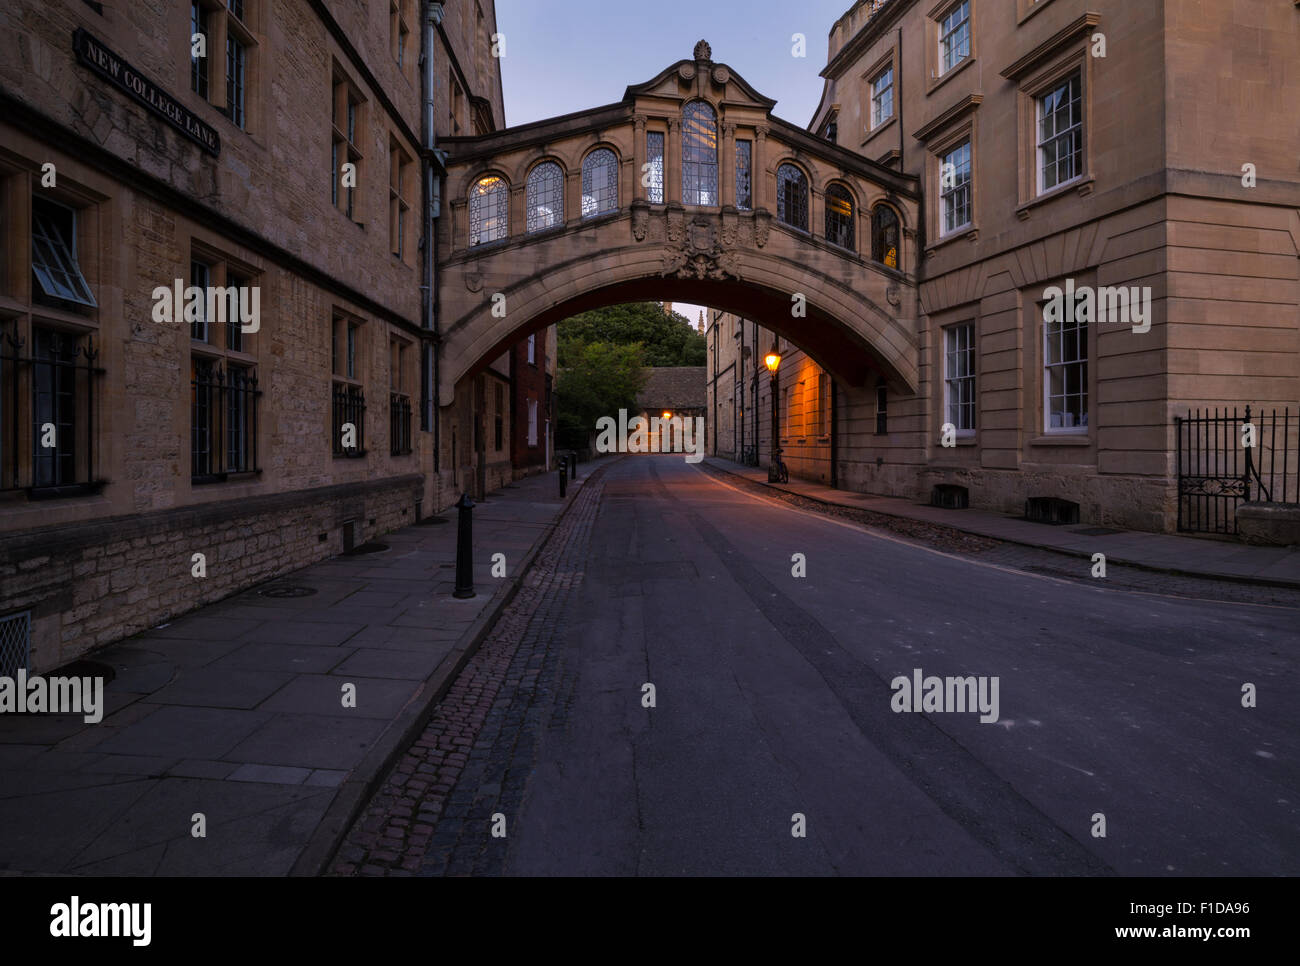 The bridge of sighs in oxford city centre linking two unversity buildings together Stock Photo